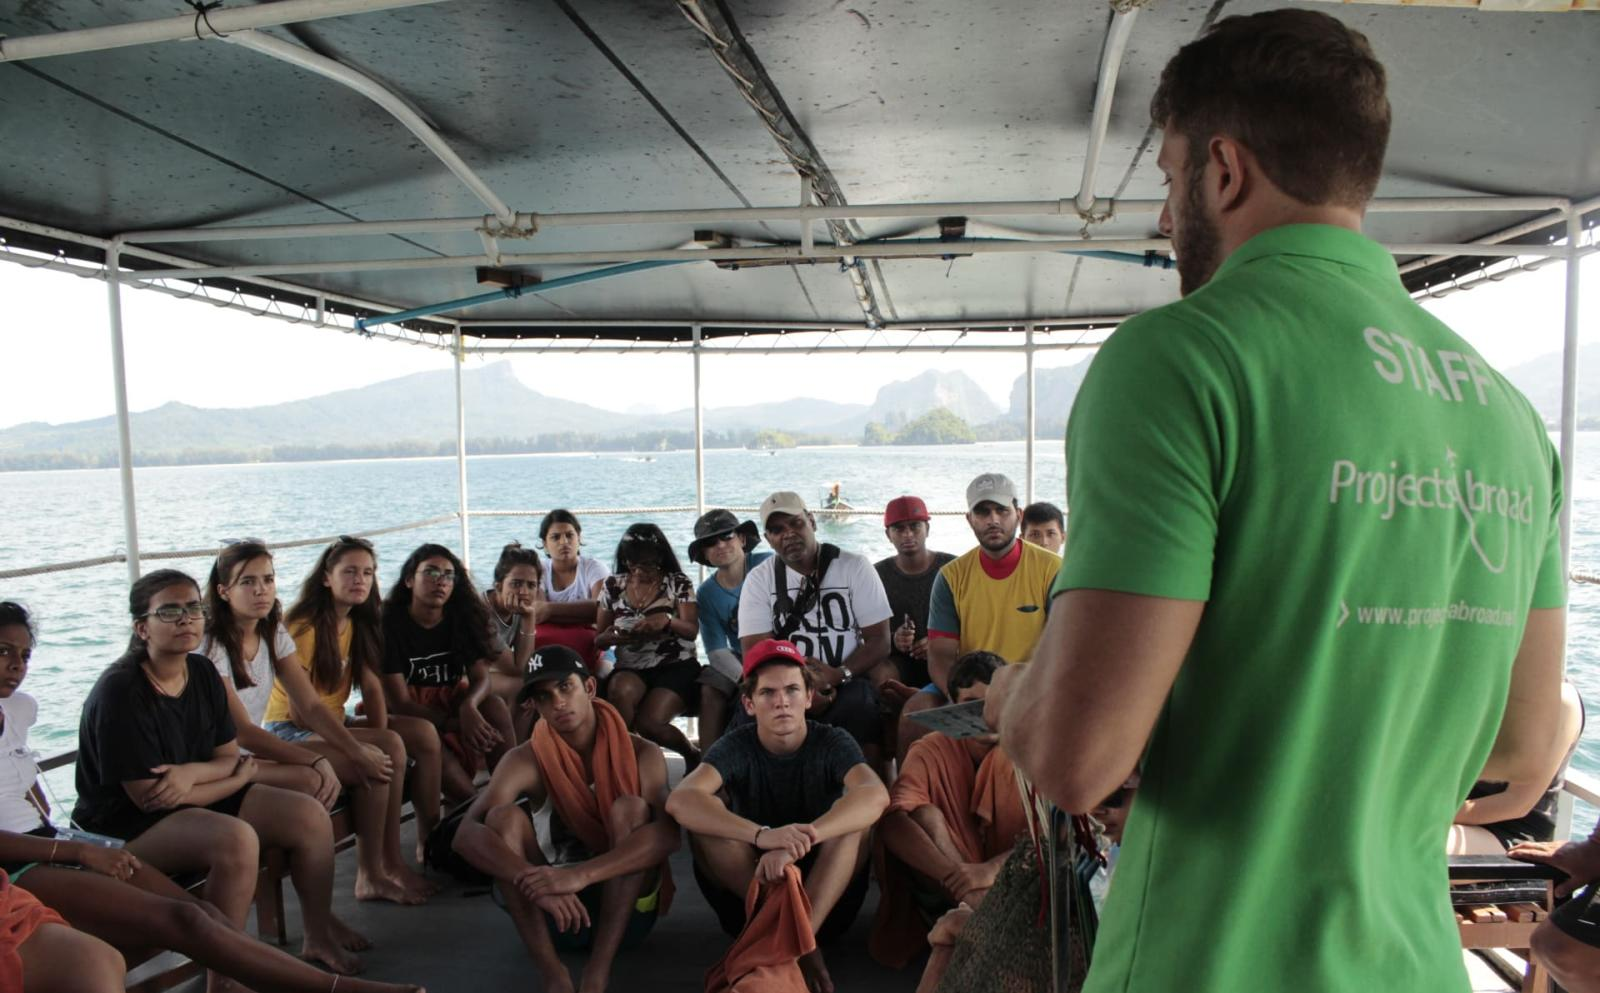 A Project's Abroad staff member gives volunteers a safety brief on responsible diving in Thailand